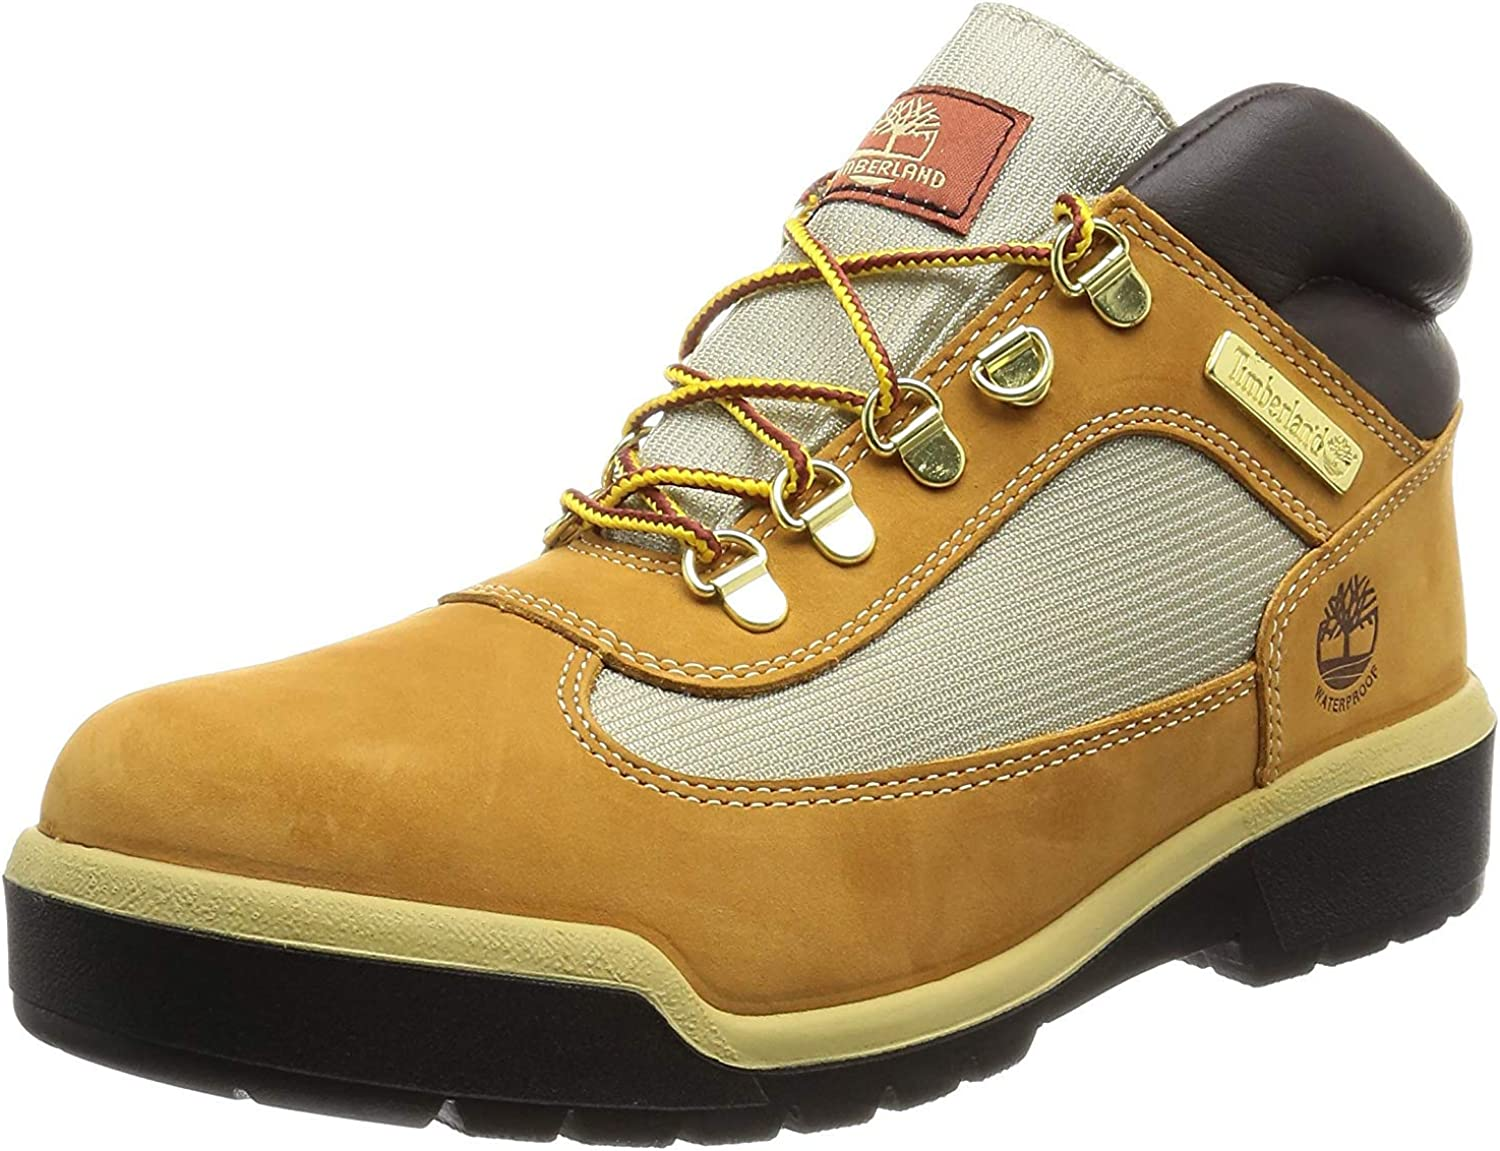 Timberland Men s Field Boot F L Waterproof